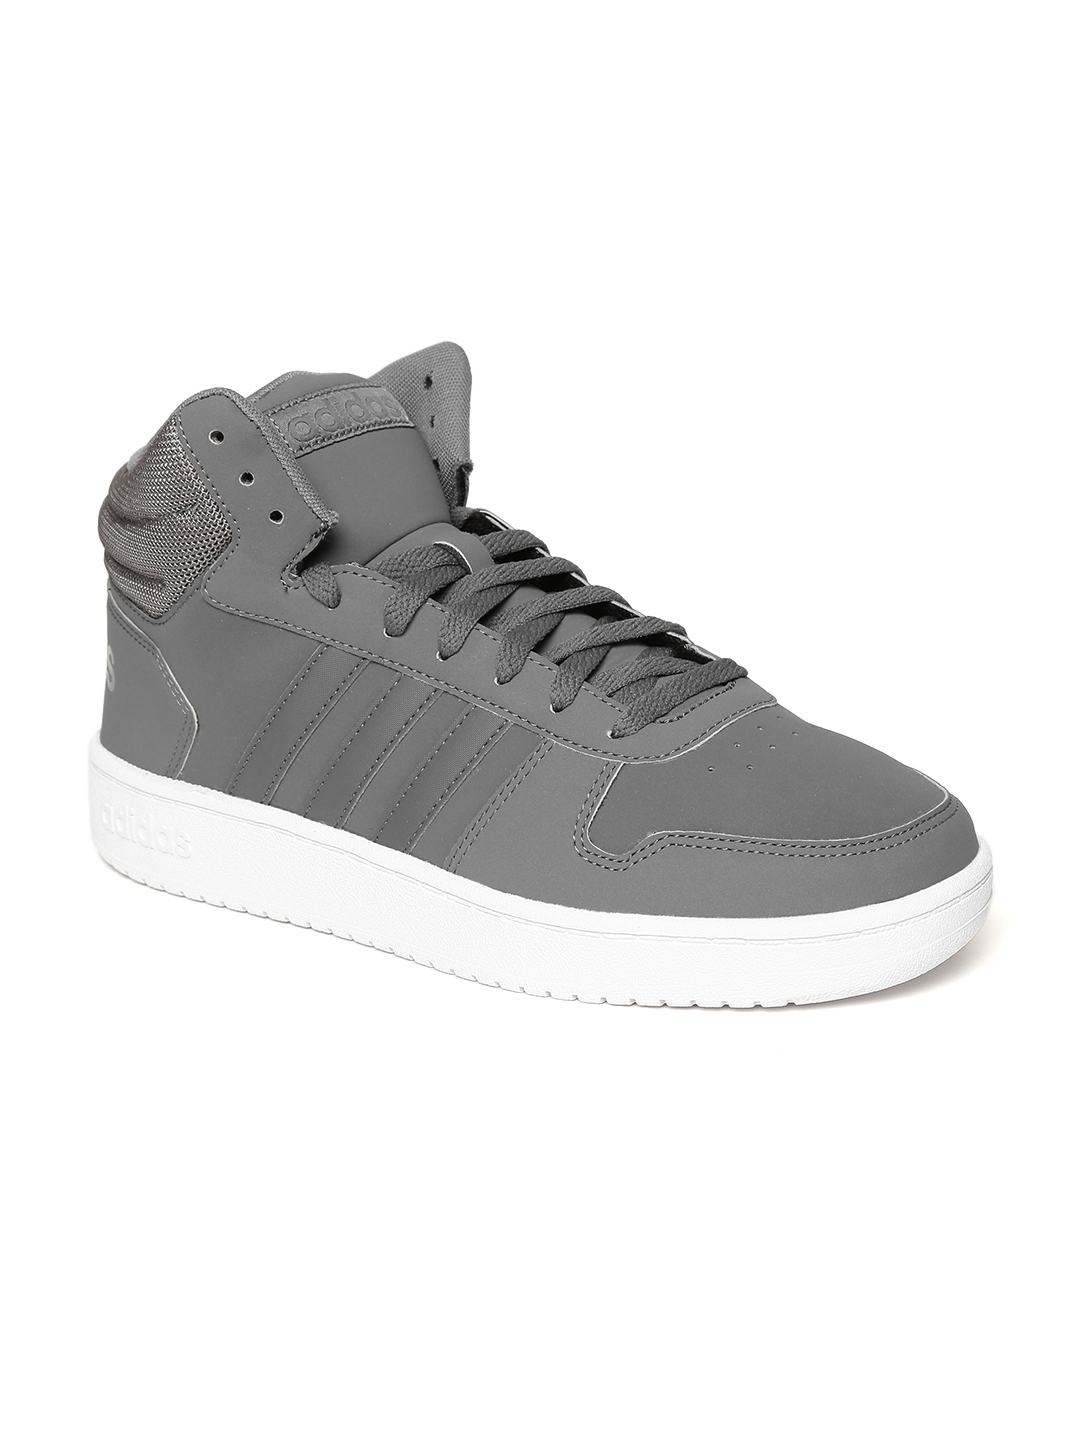 Buy ADIDAS Men Grey HOOPS 2.0 MID Sneakers - Casual Shoes for Men ... 2b8ddfe21